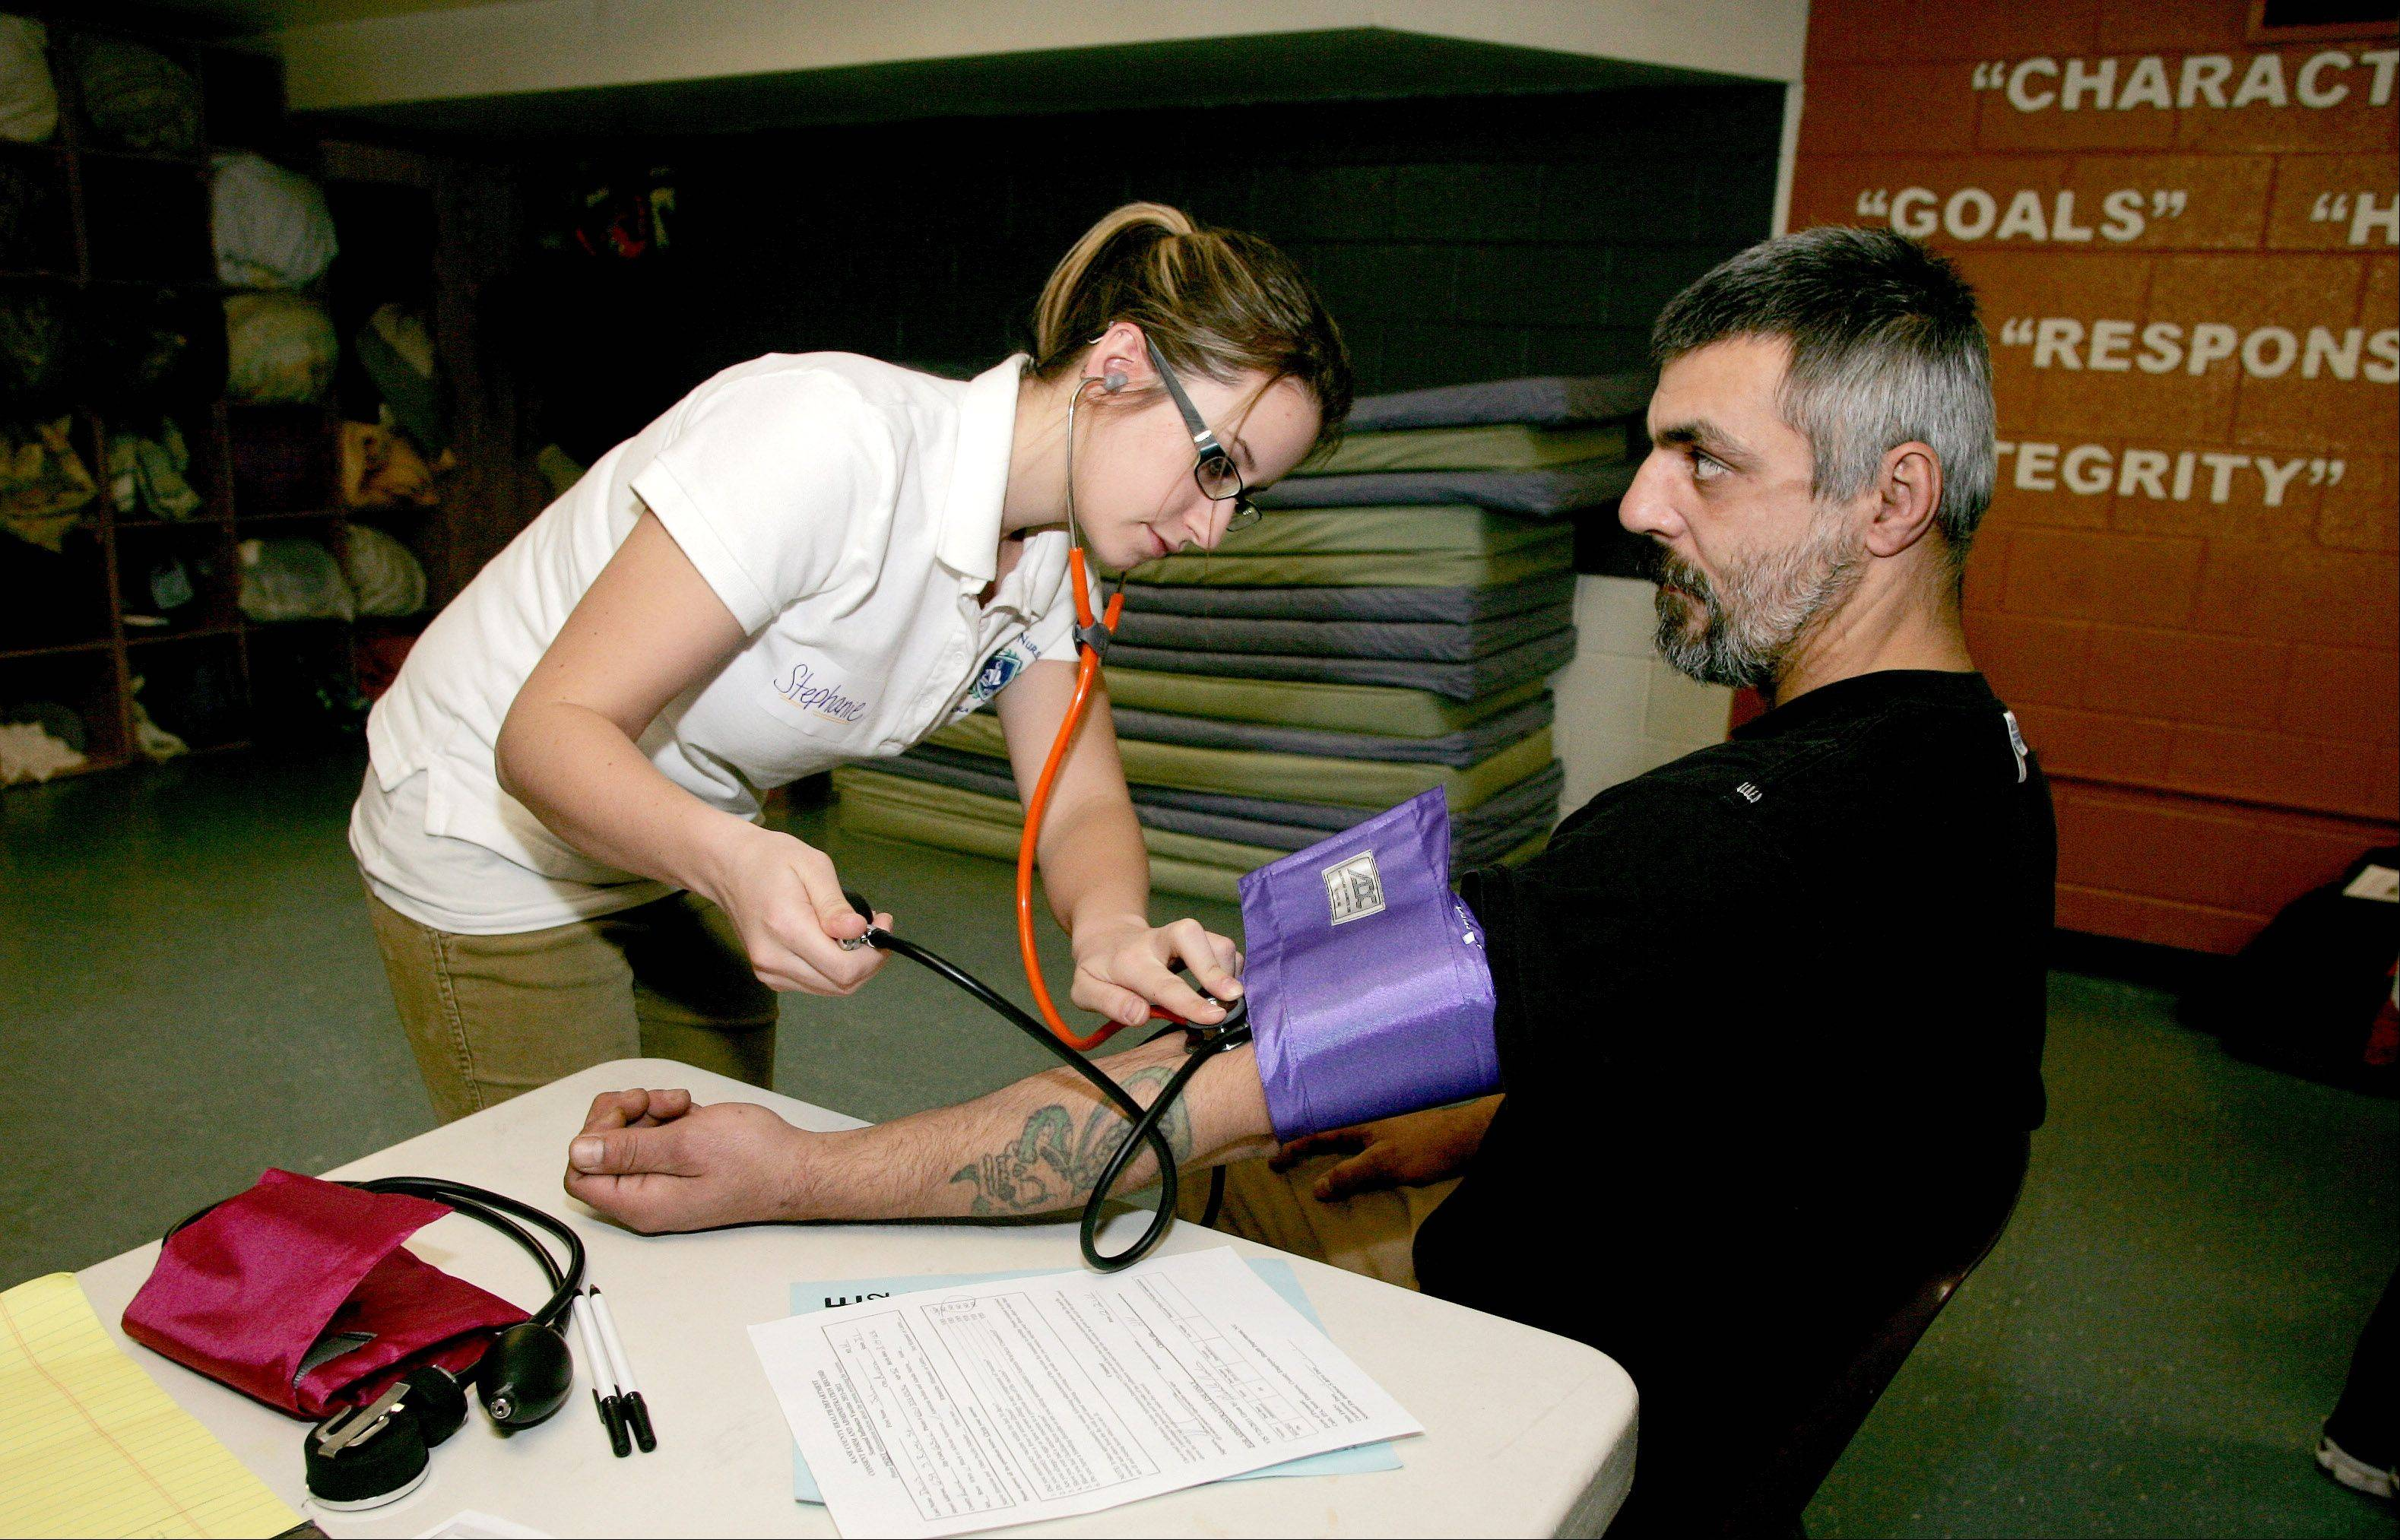 John Davis, who stays at Hesed House in Aurora, has his blood pressure taken Friday by nursing student Stephanie Peterson as Aurora University nursing students hold their first health clinic at the homeless services center.